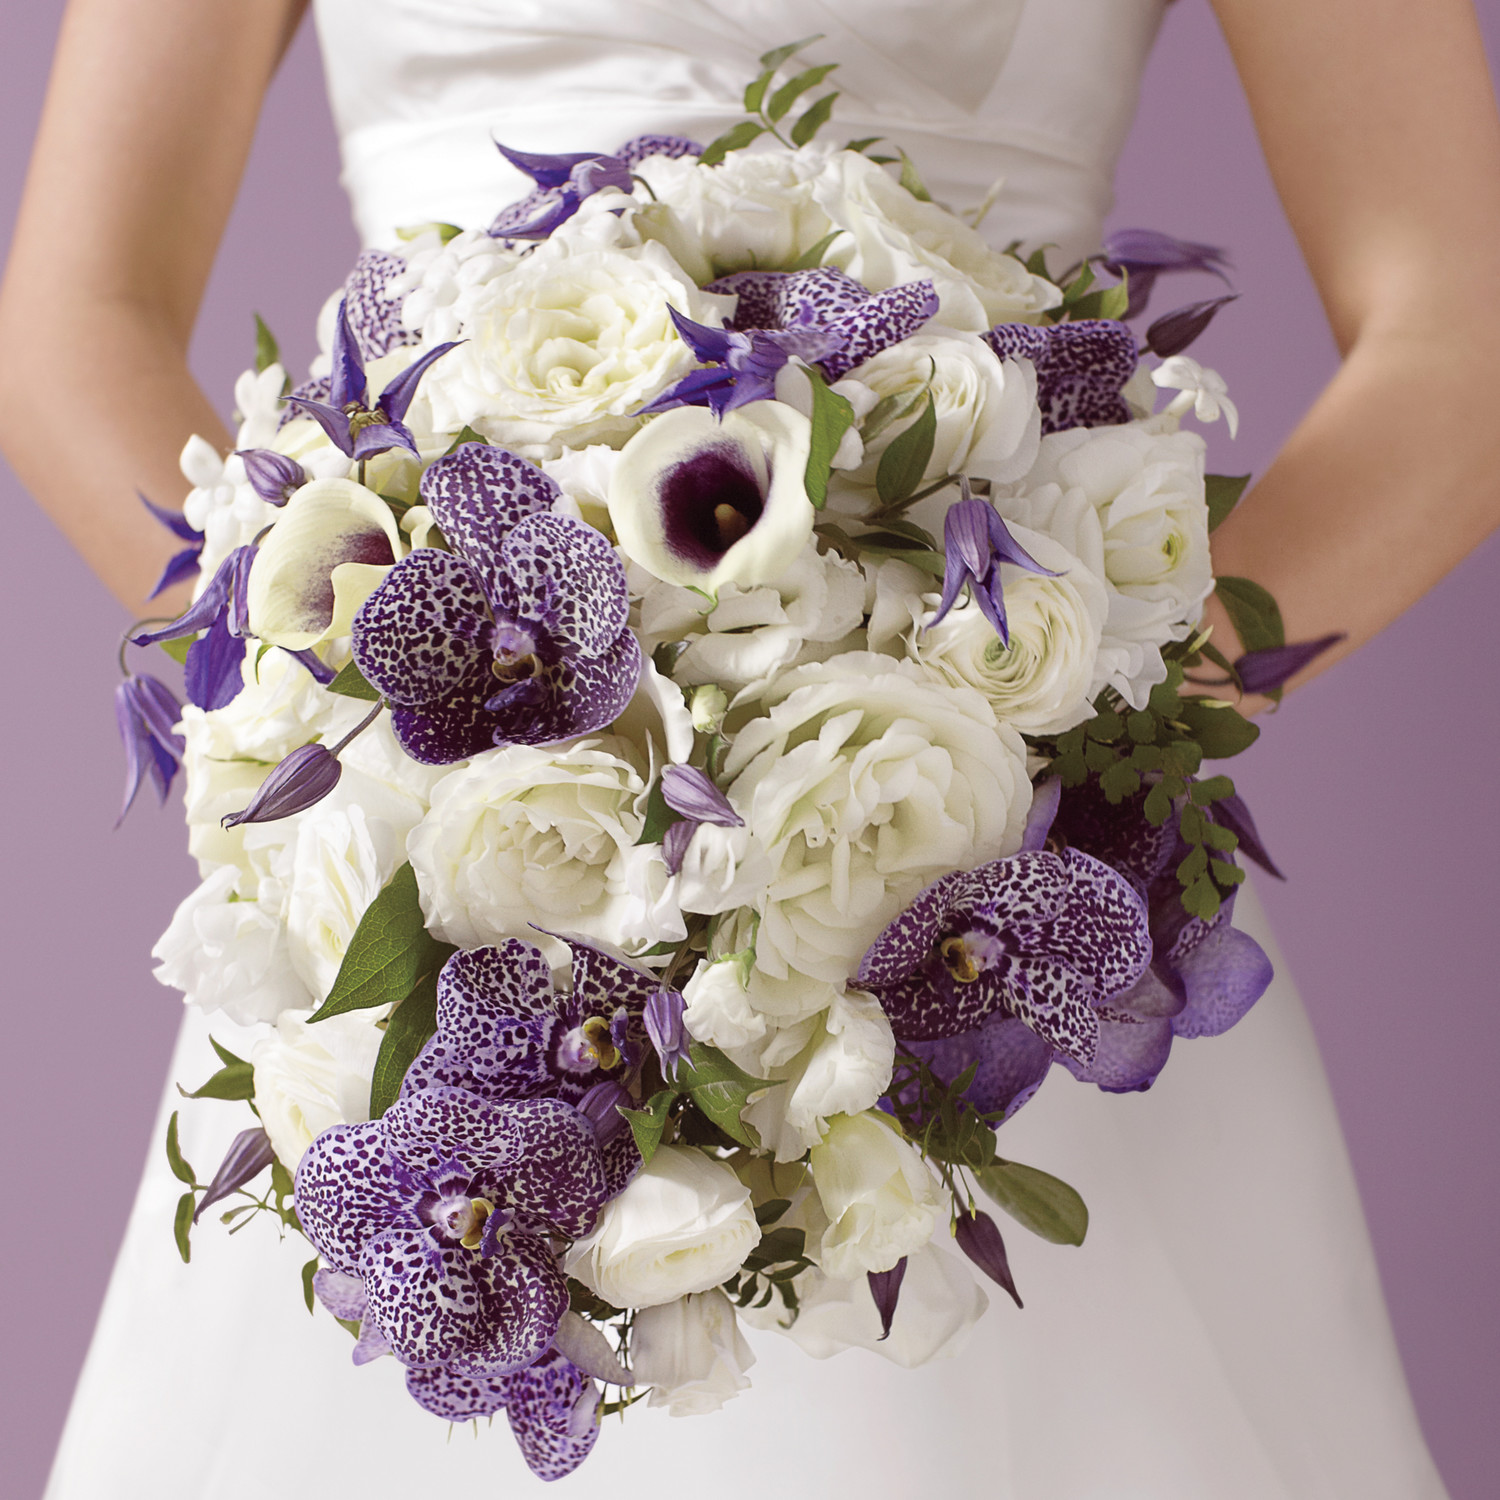 Cool-Weather Wedding Flowers